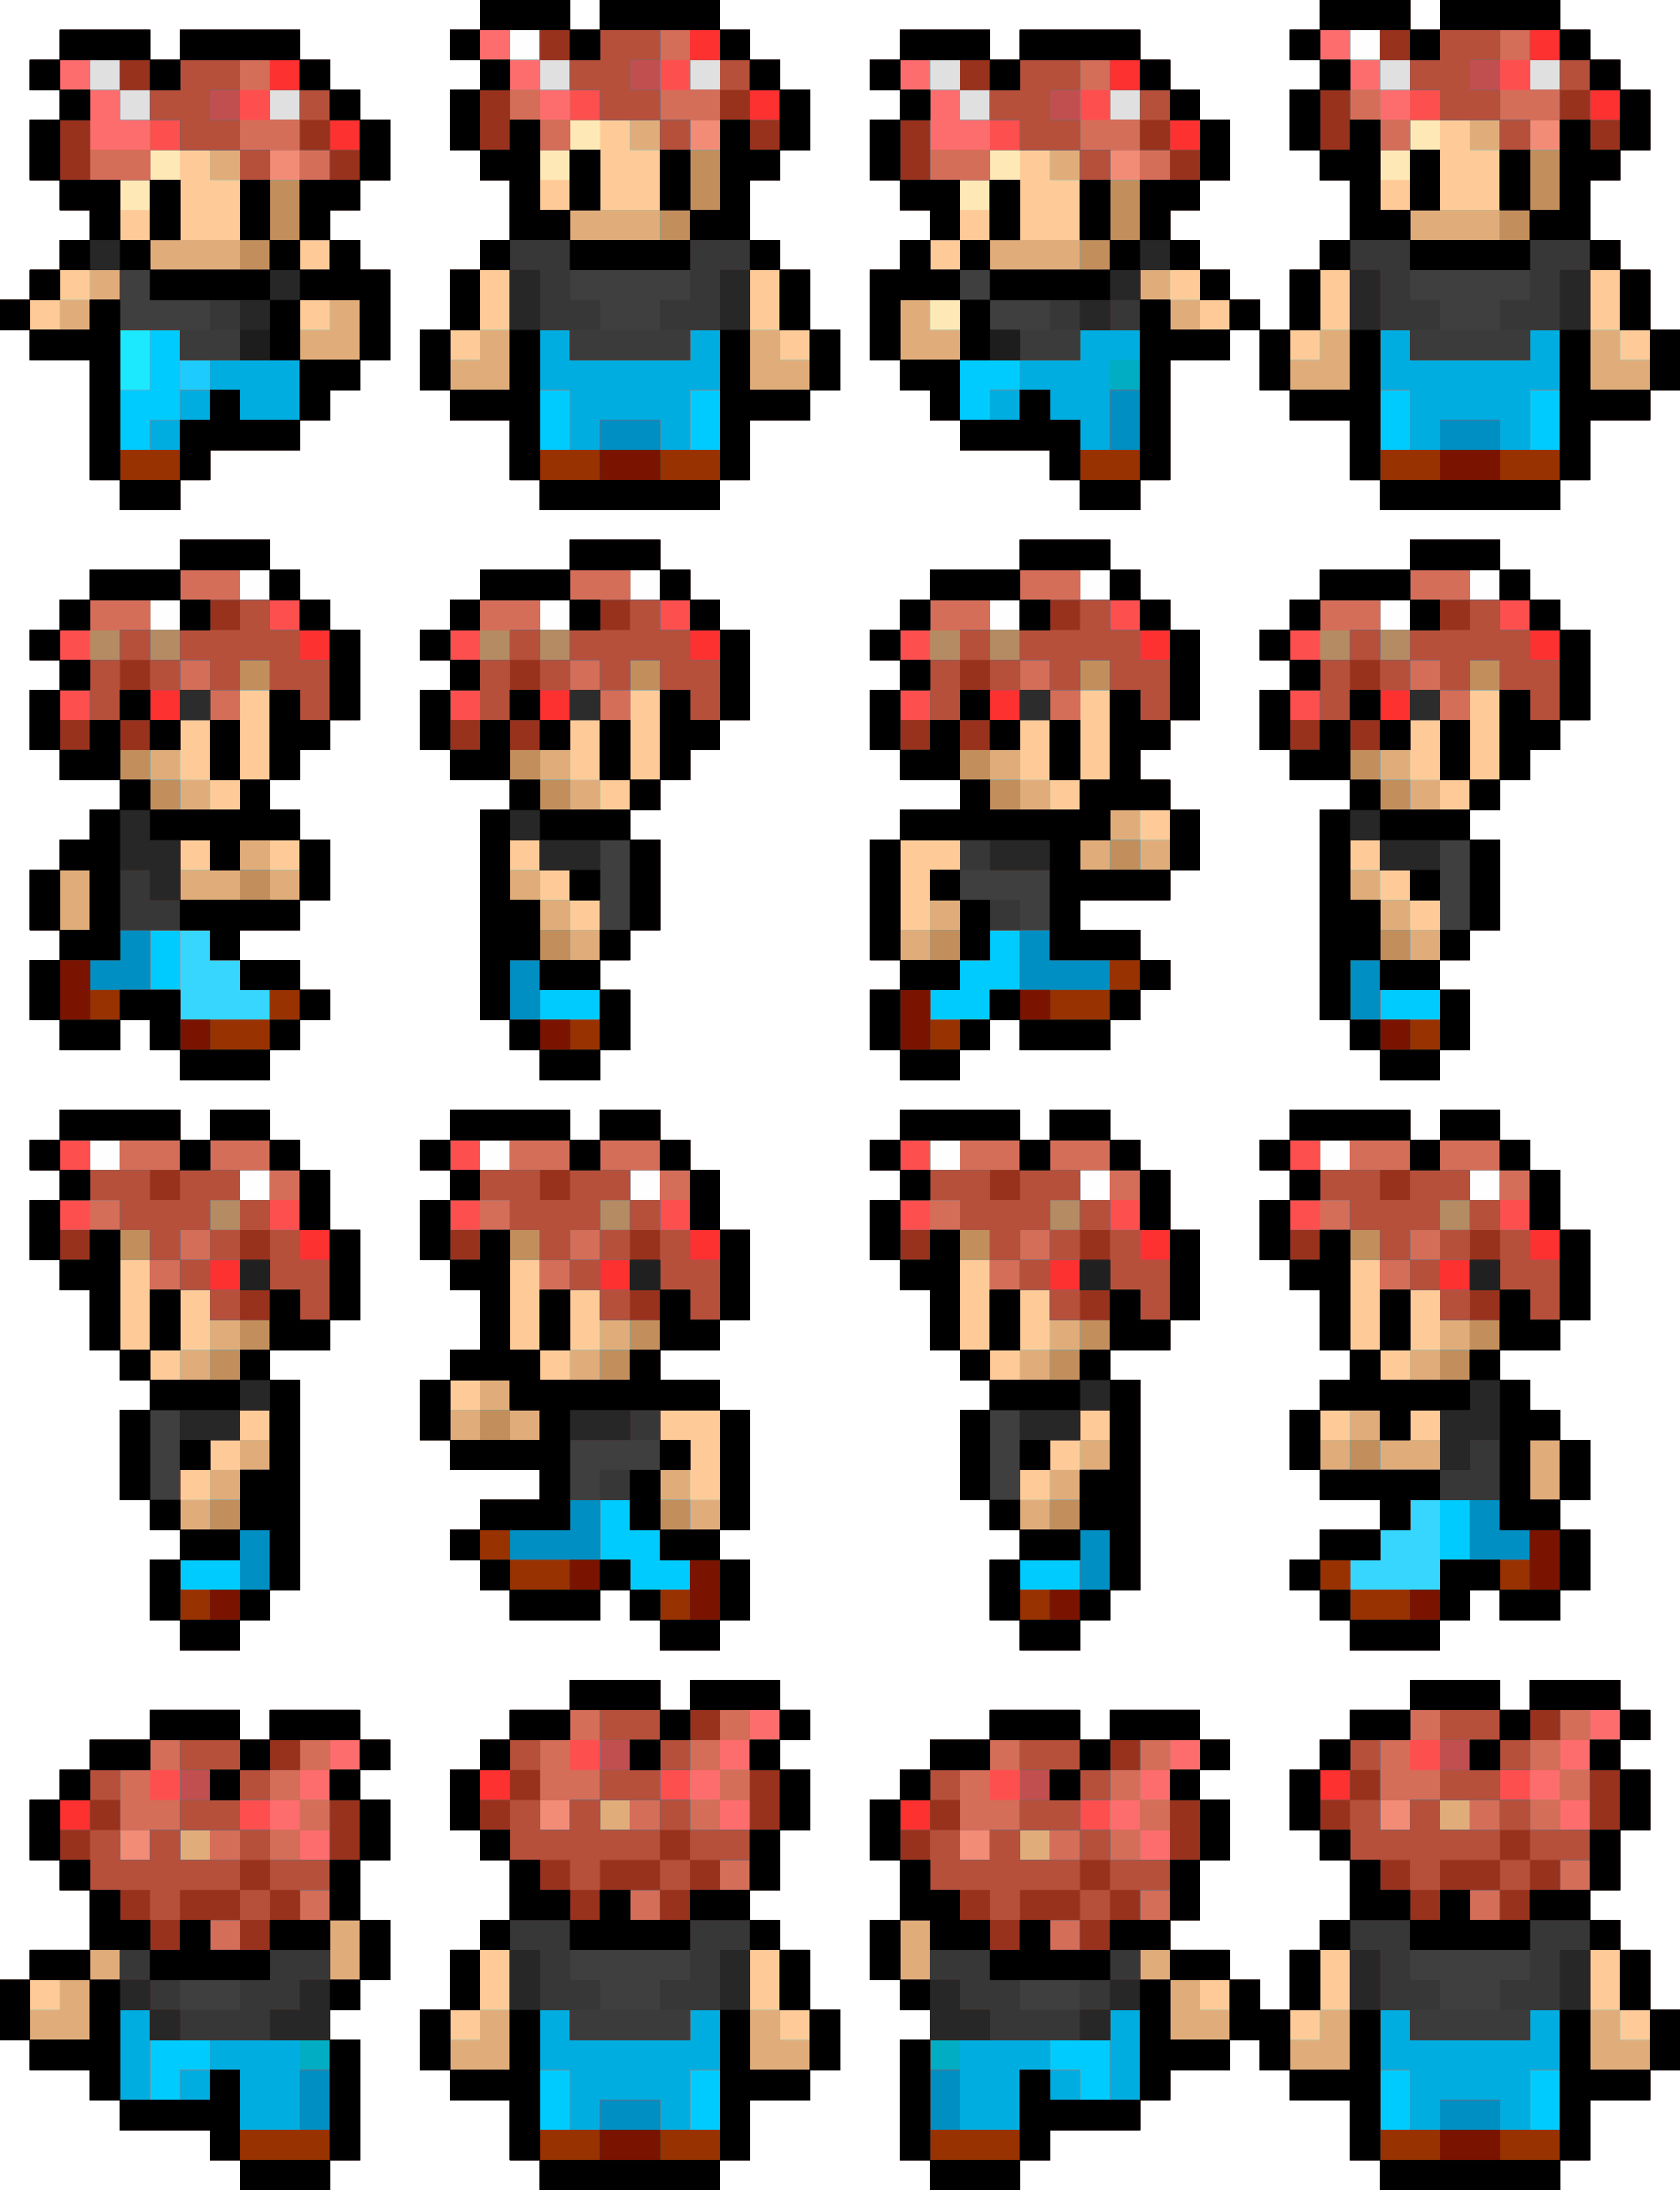 rpg sprite sheet png